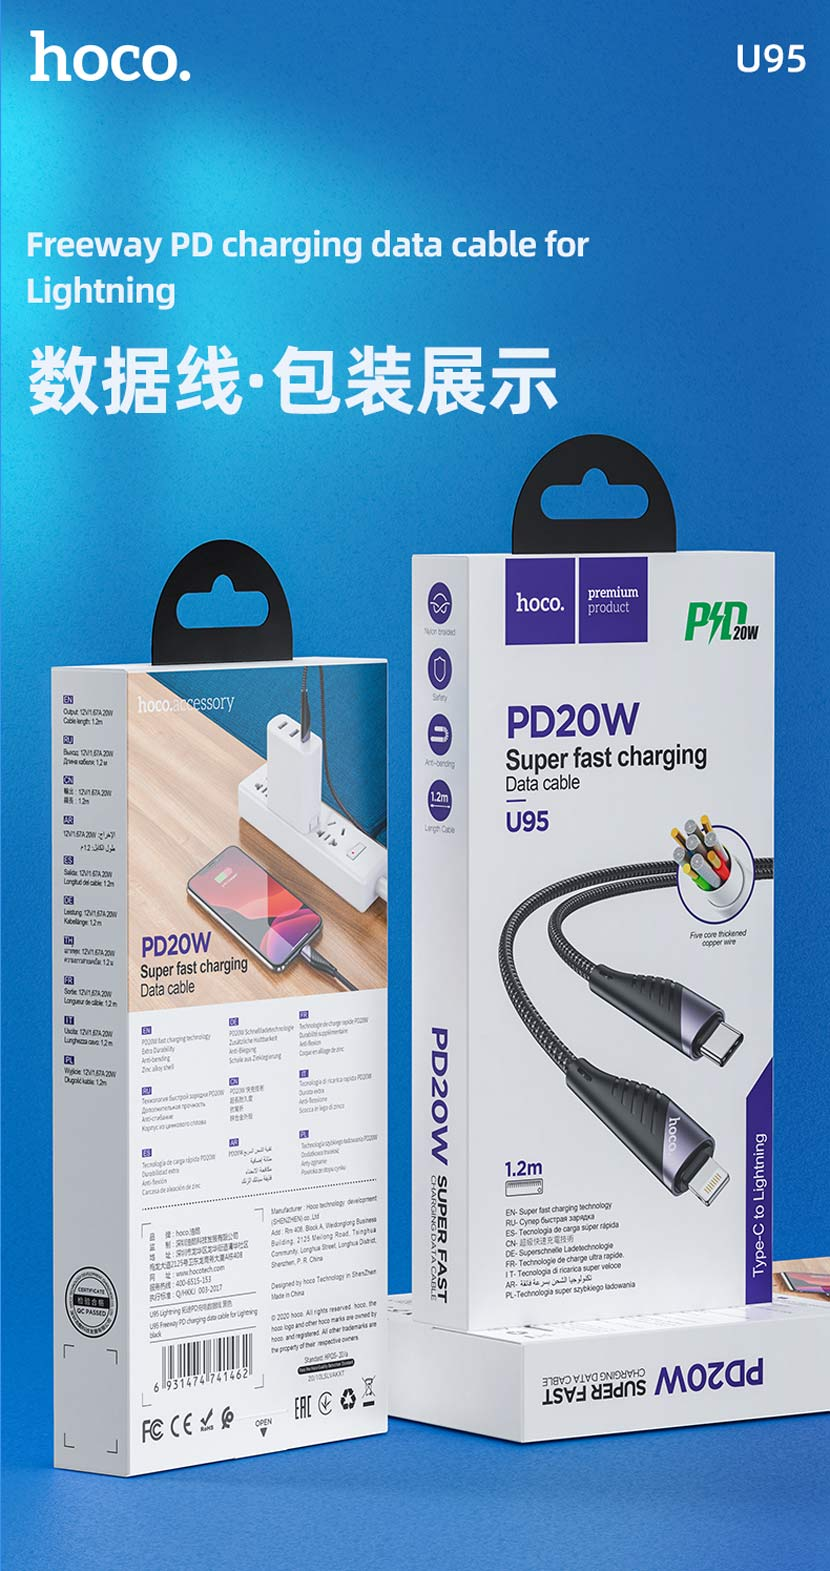 hoco news u95 freeway pd charging data cable type c to lightning package cn